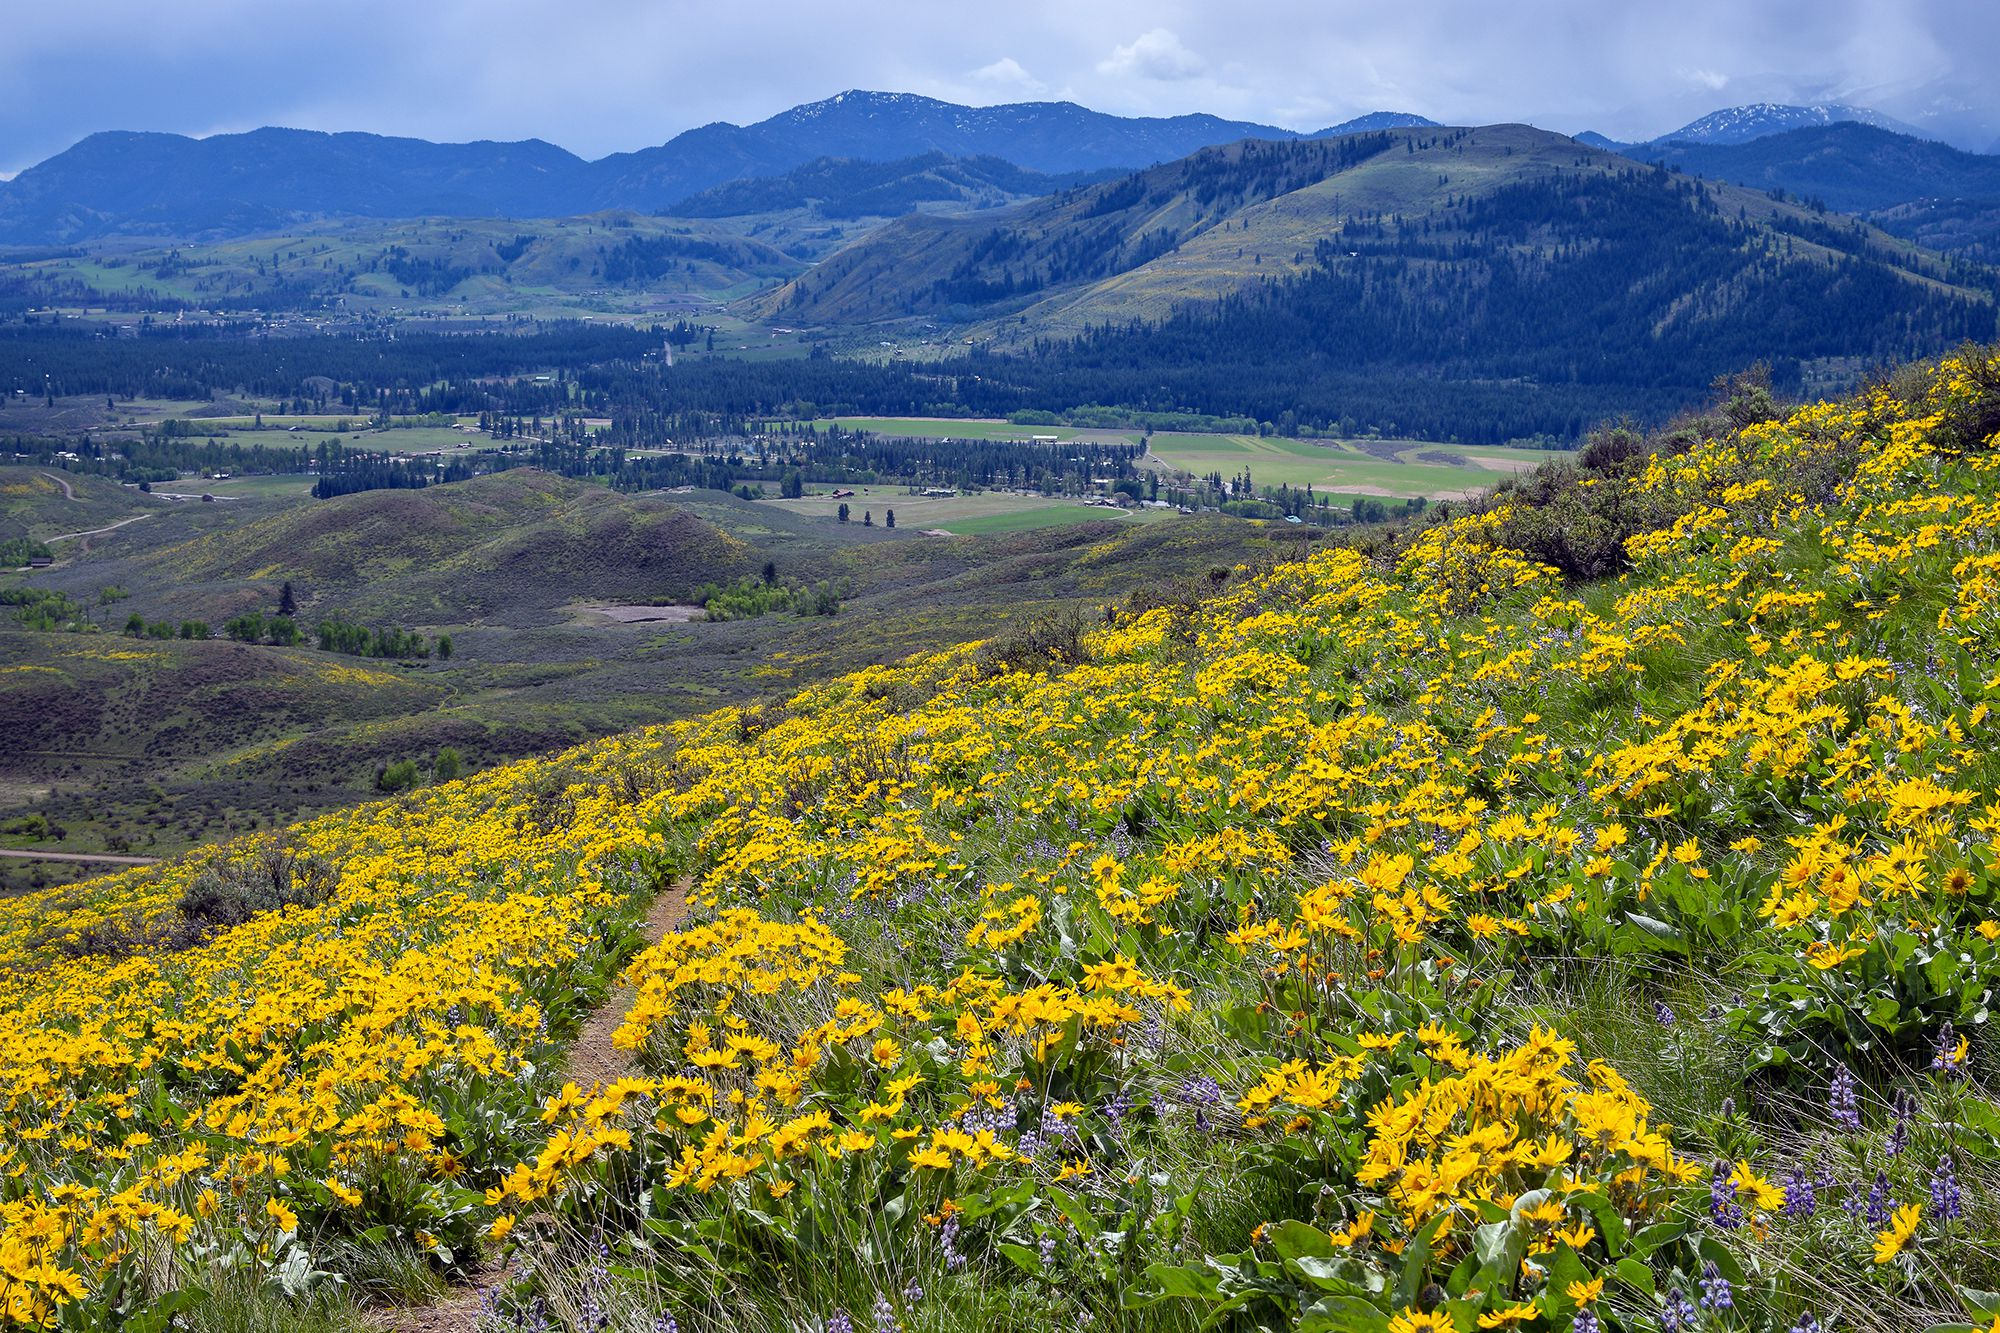 Spring in Methow Valley